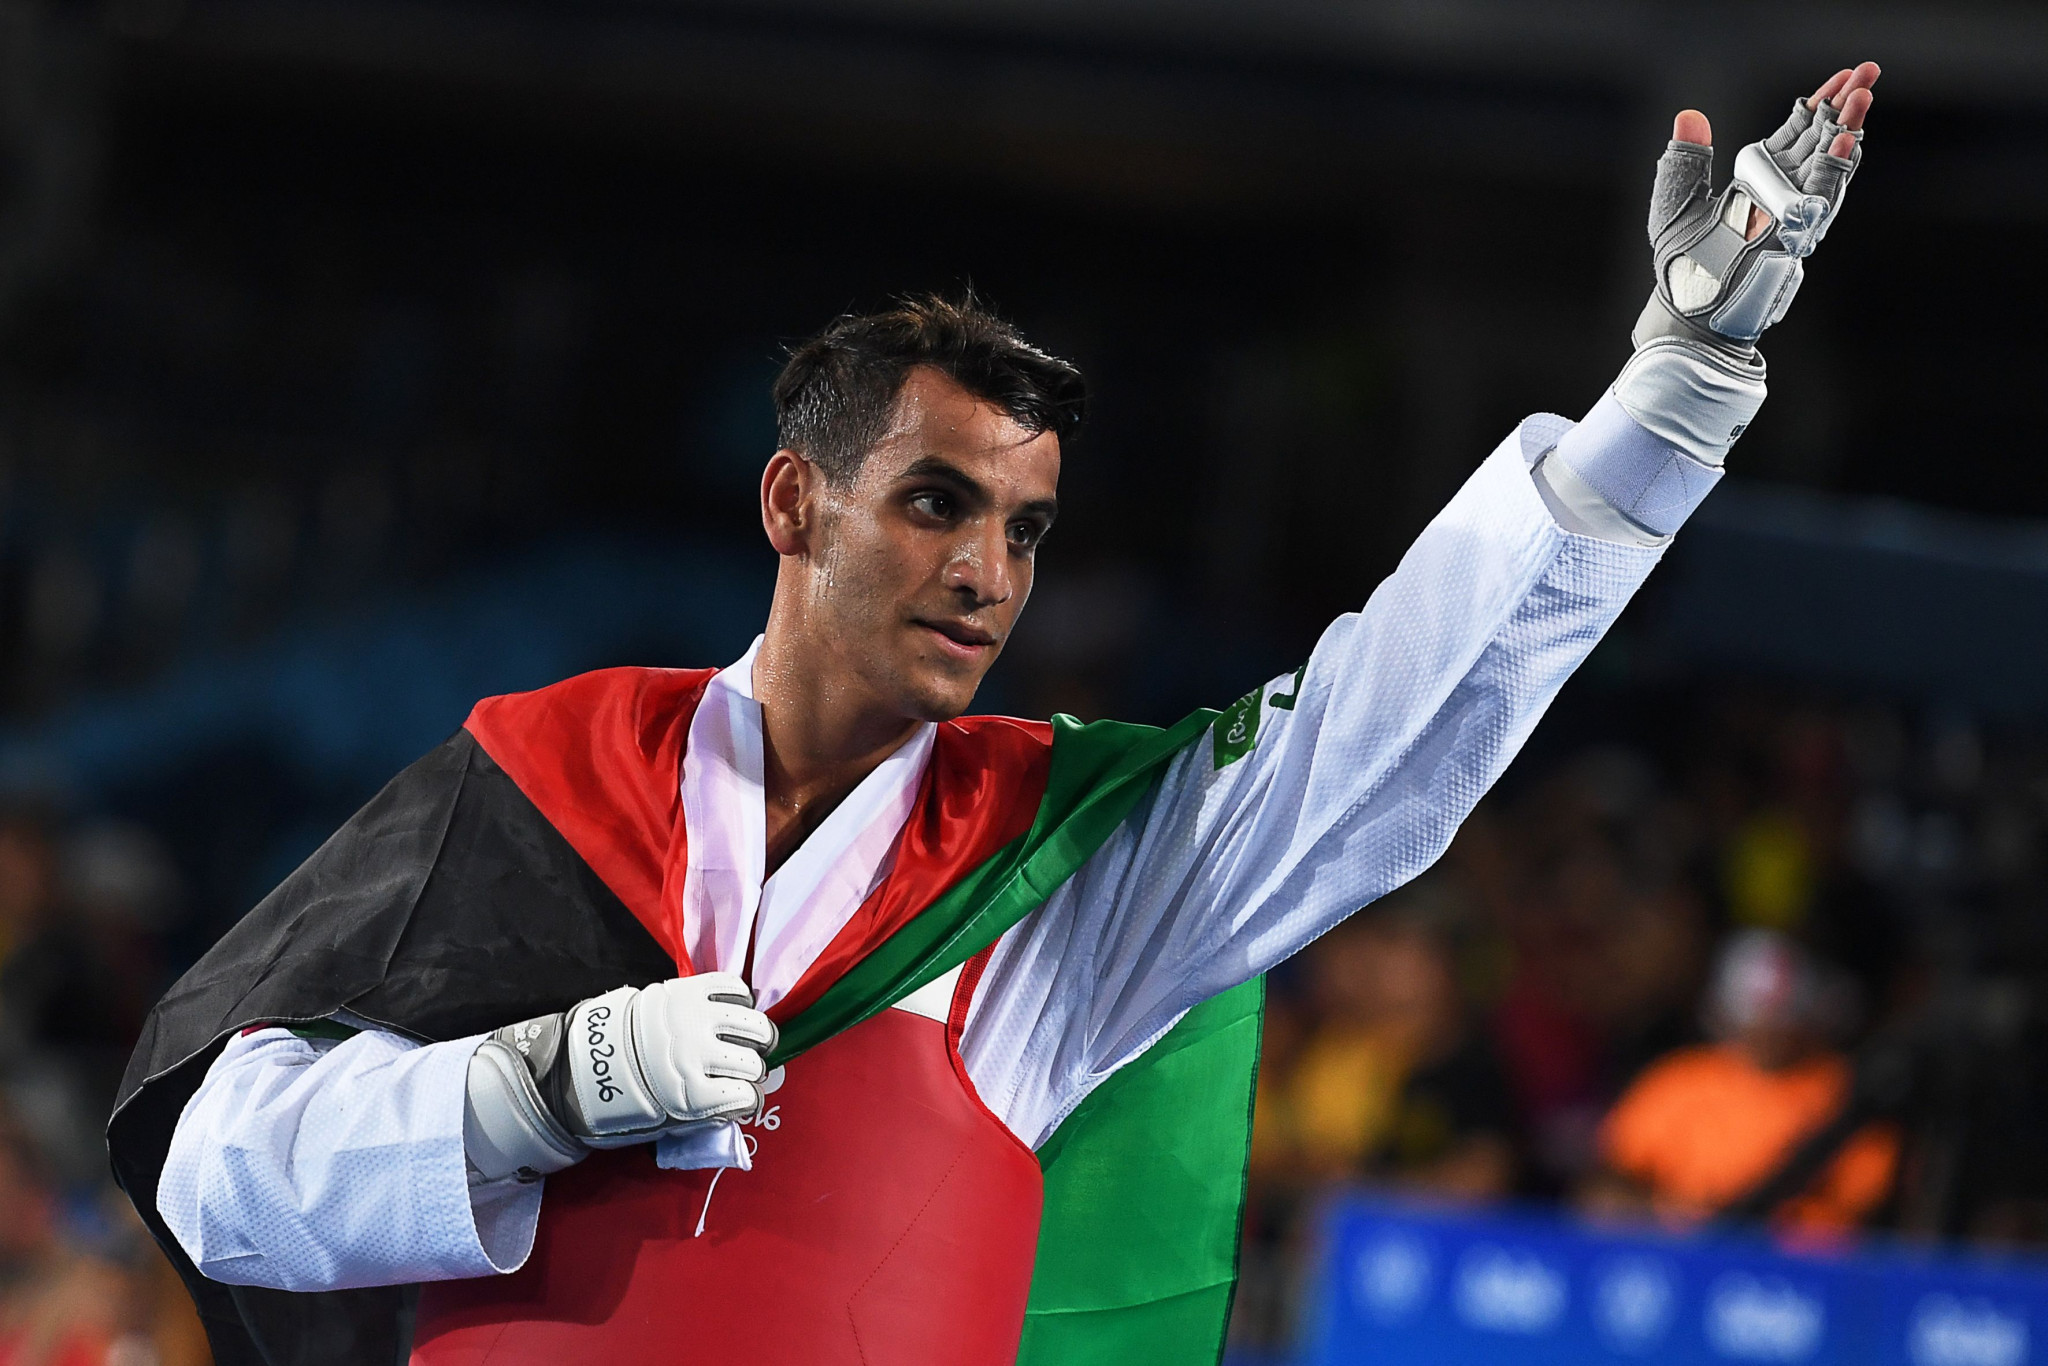 Ahmad Abughaush's gold at the Rio 2016 Olympics has inspired the Jordan Olympic Committee to push for further success at Tokyo 2020 ©Getty Images